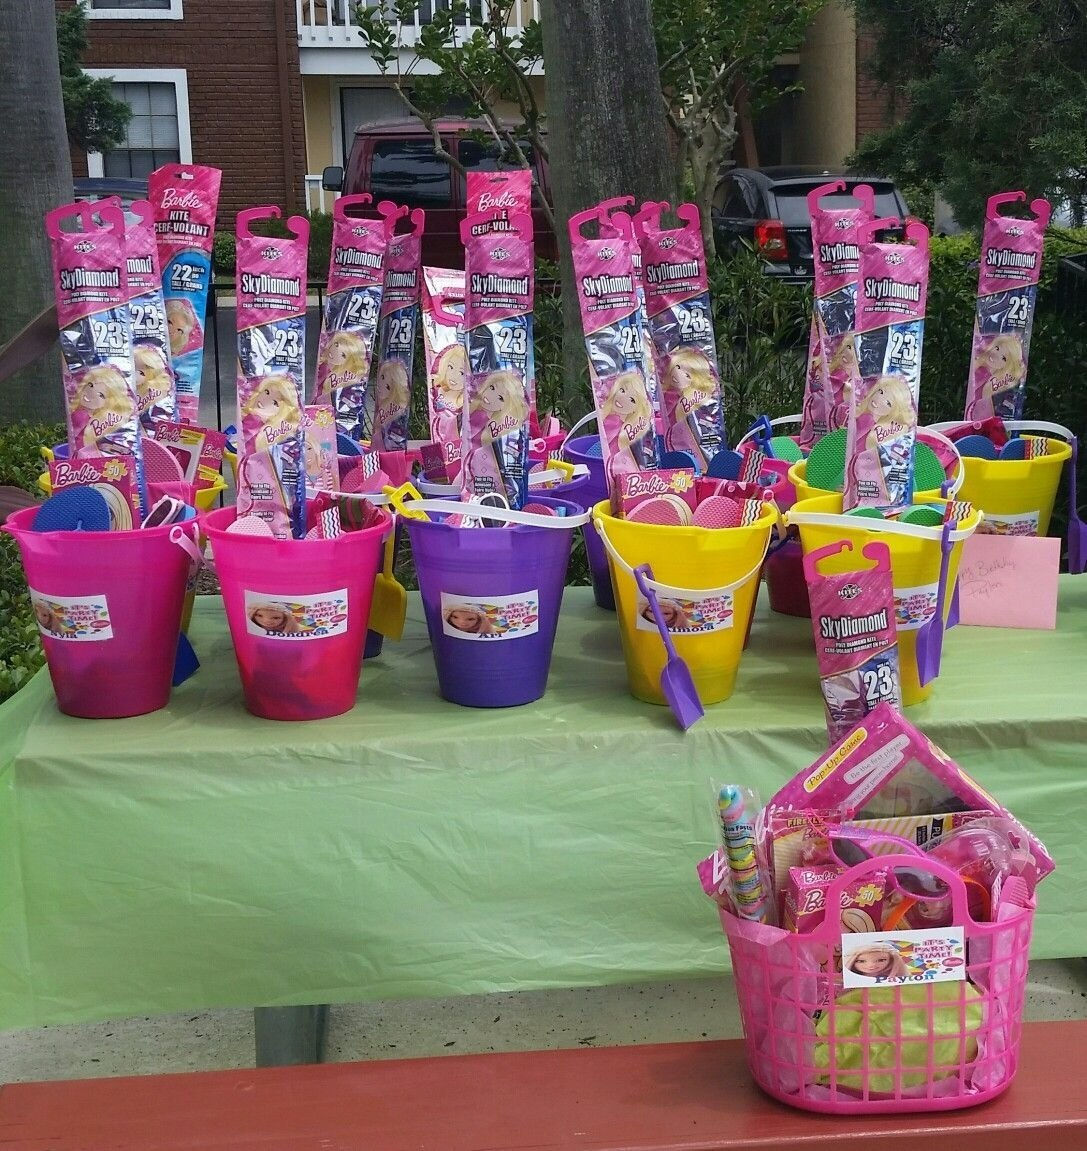 10 Pretty Ideas For Birthday Party Favors barbie pool party favors idea barbie pool party pinterest pool 1 2021